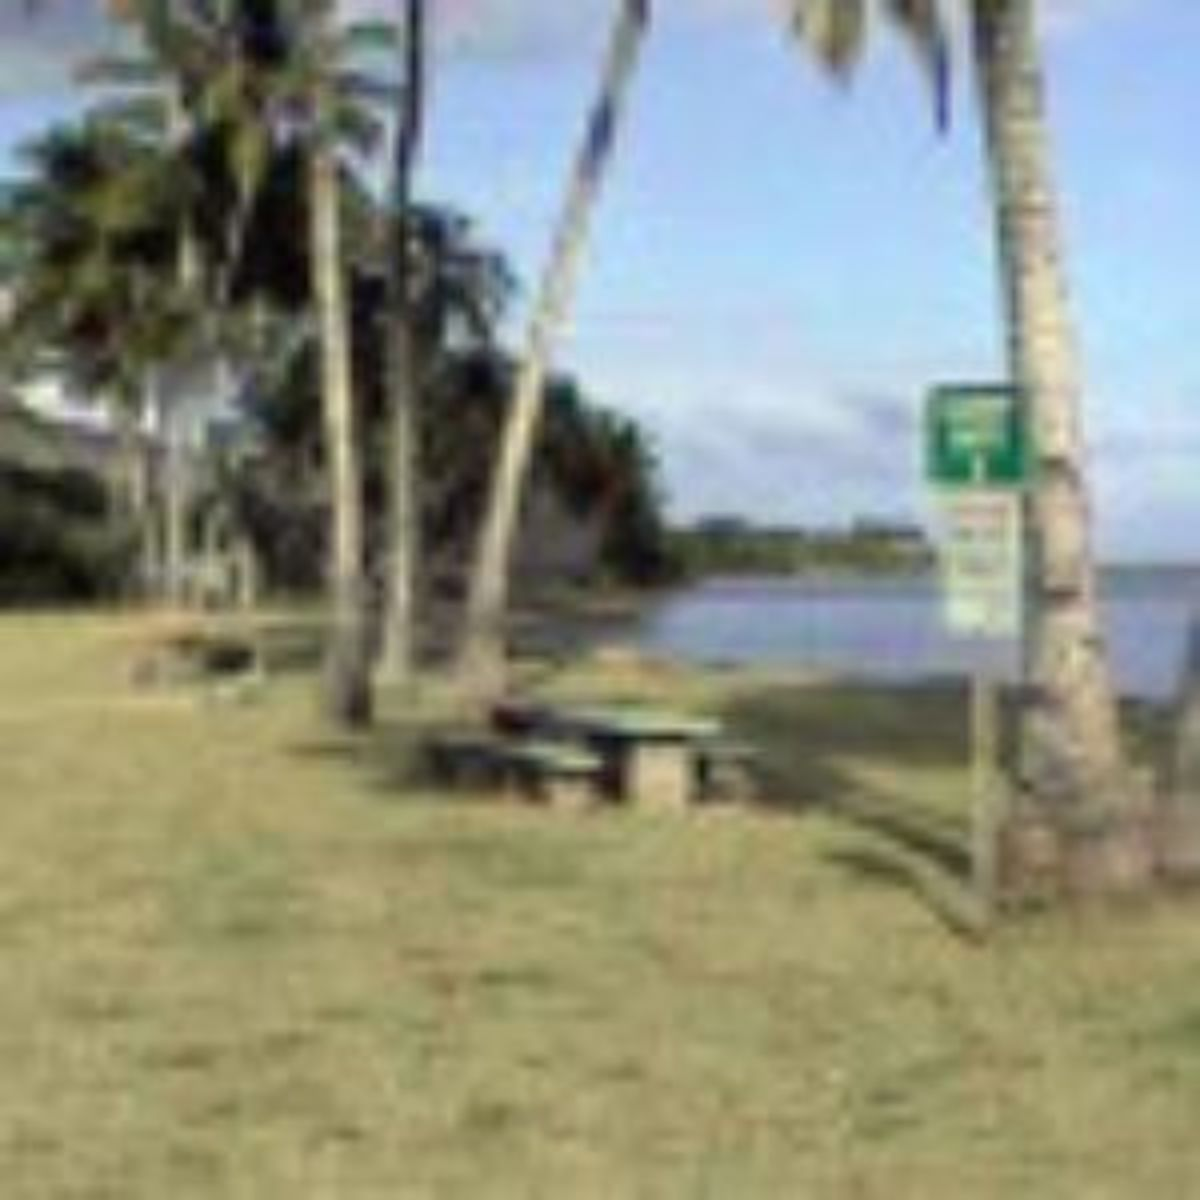 Campground facilities at One Alii Park, on Molokai, in Maui County